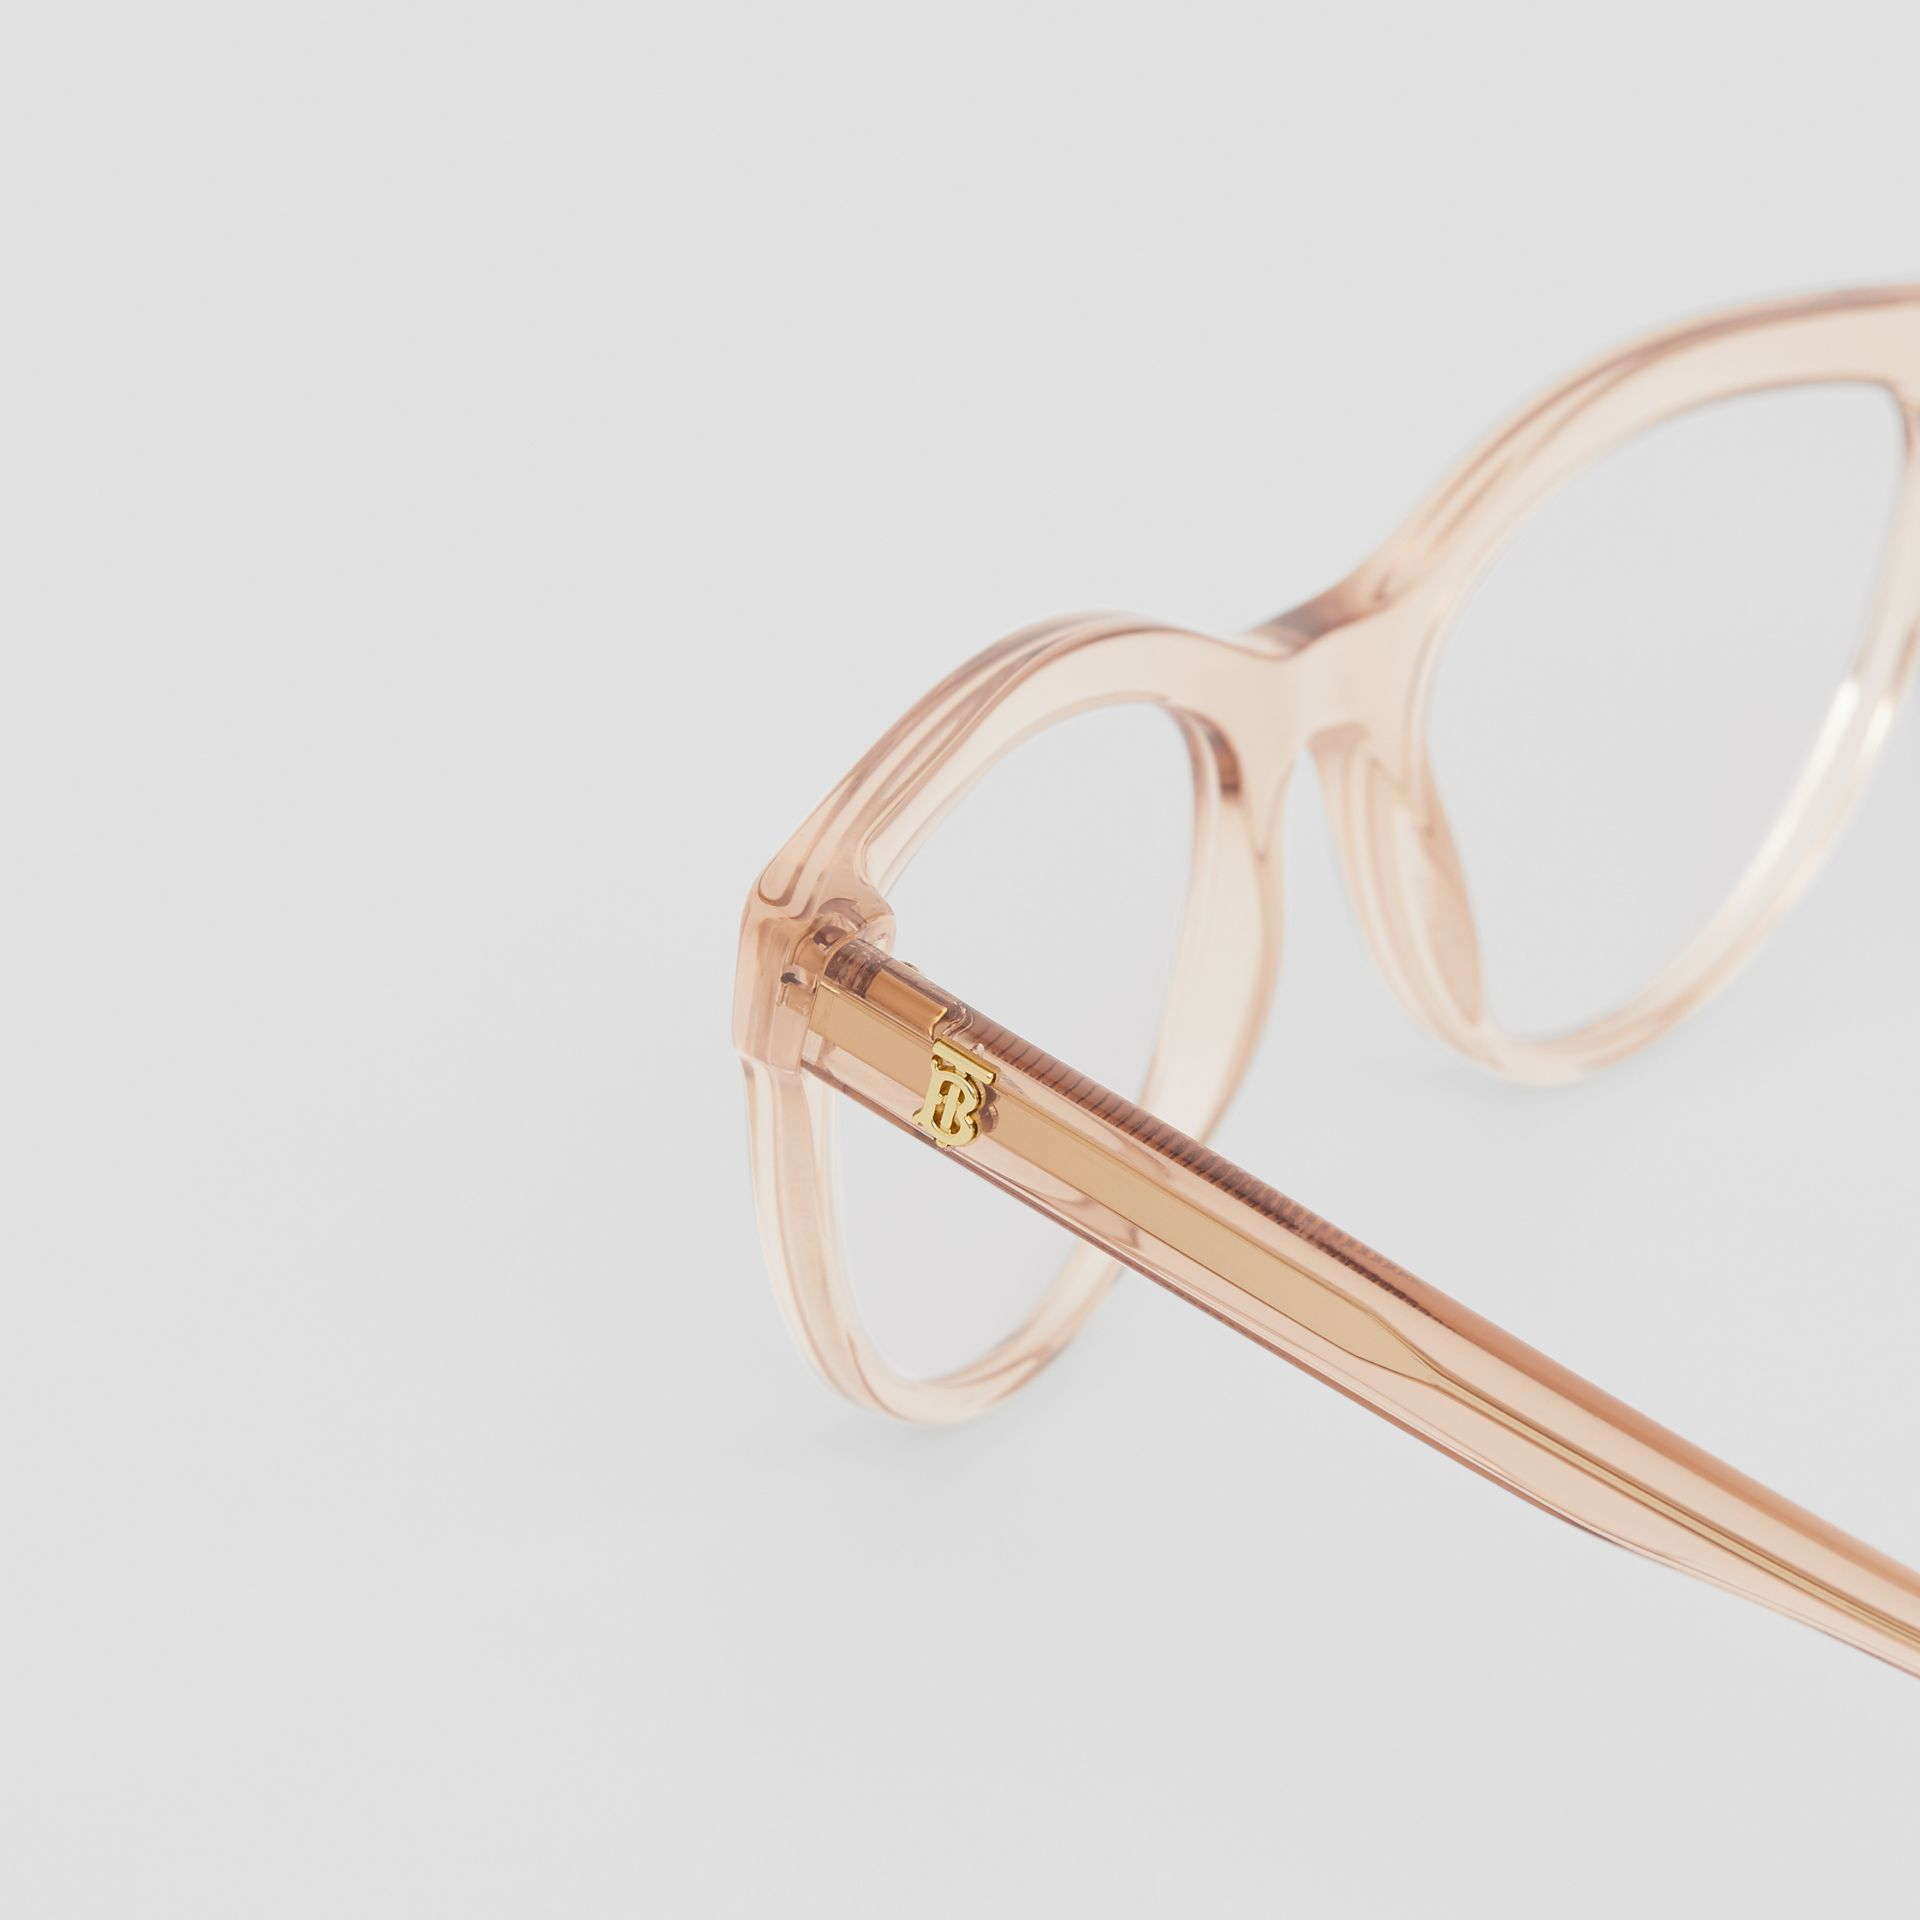 Monogram Motif Cat-eye Optical Frames in Transparent Peach - Women | Burberry - gallery image 1